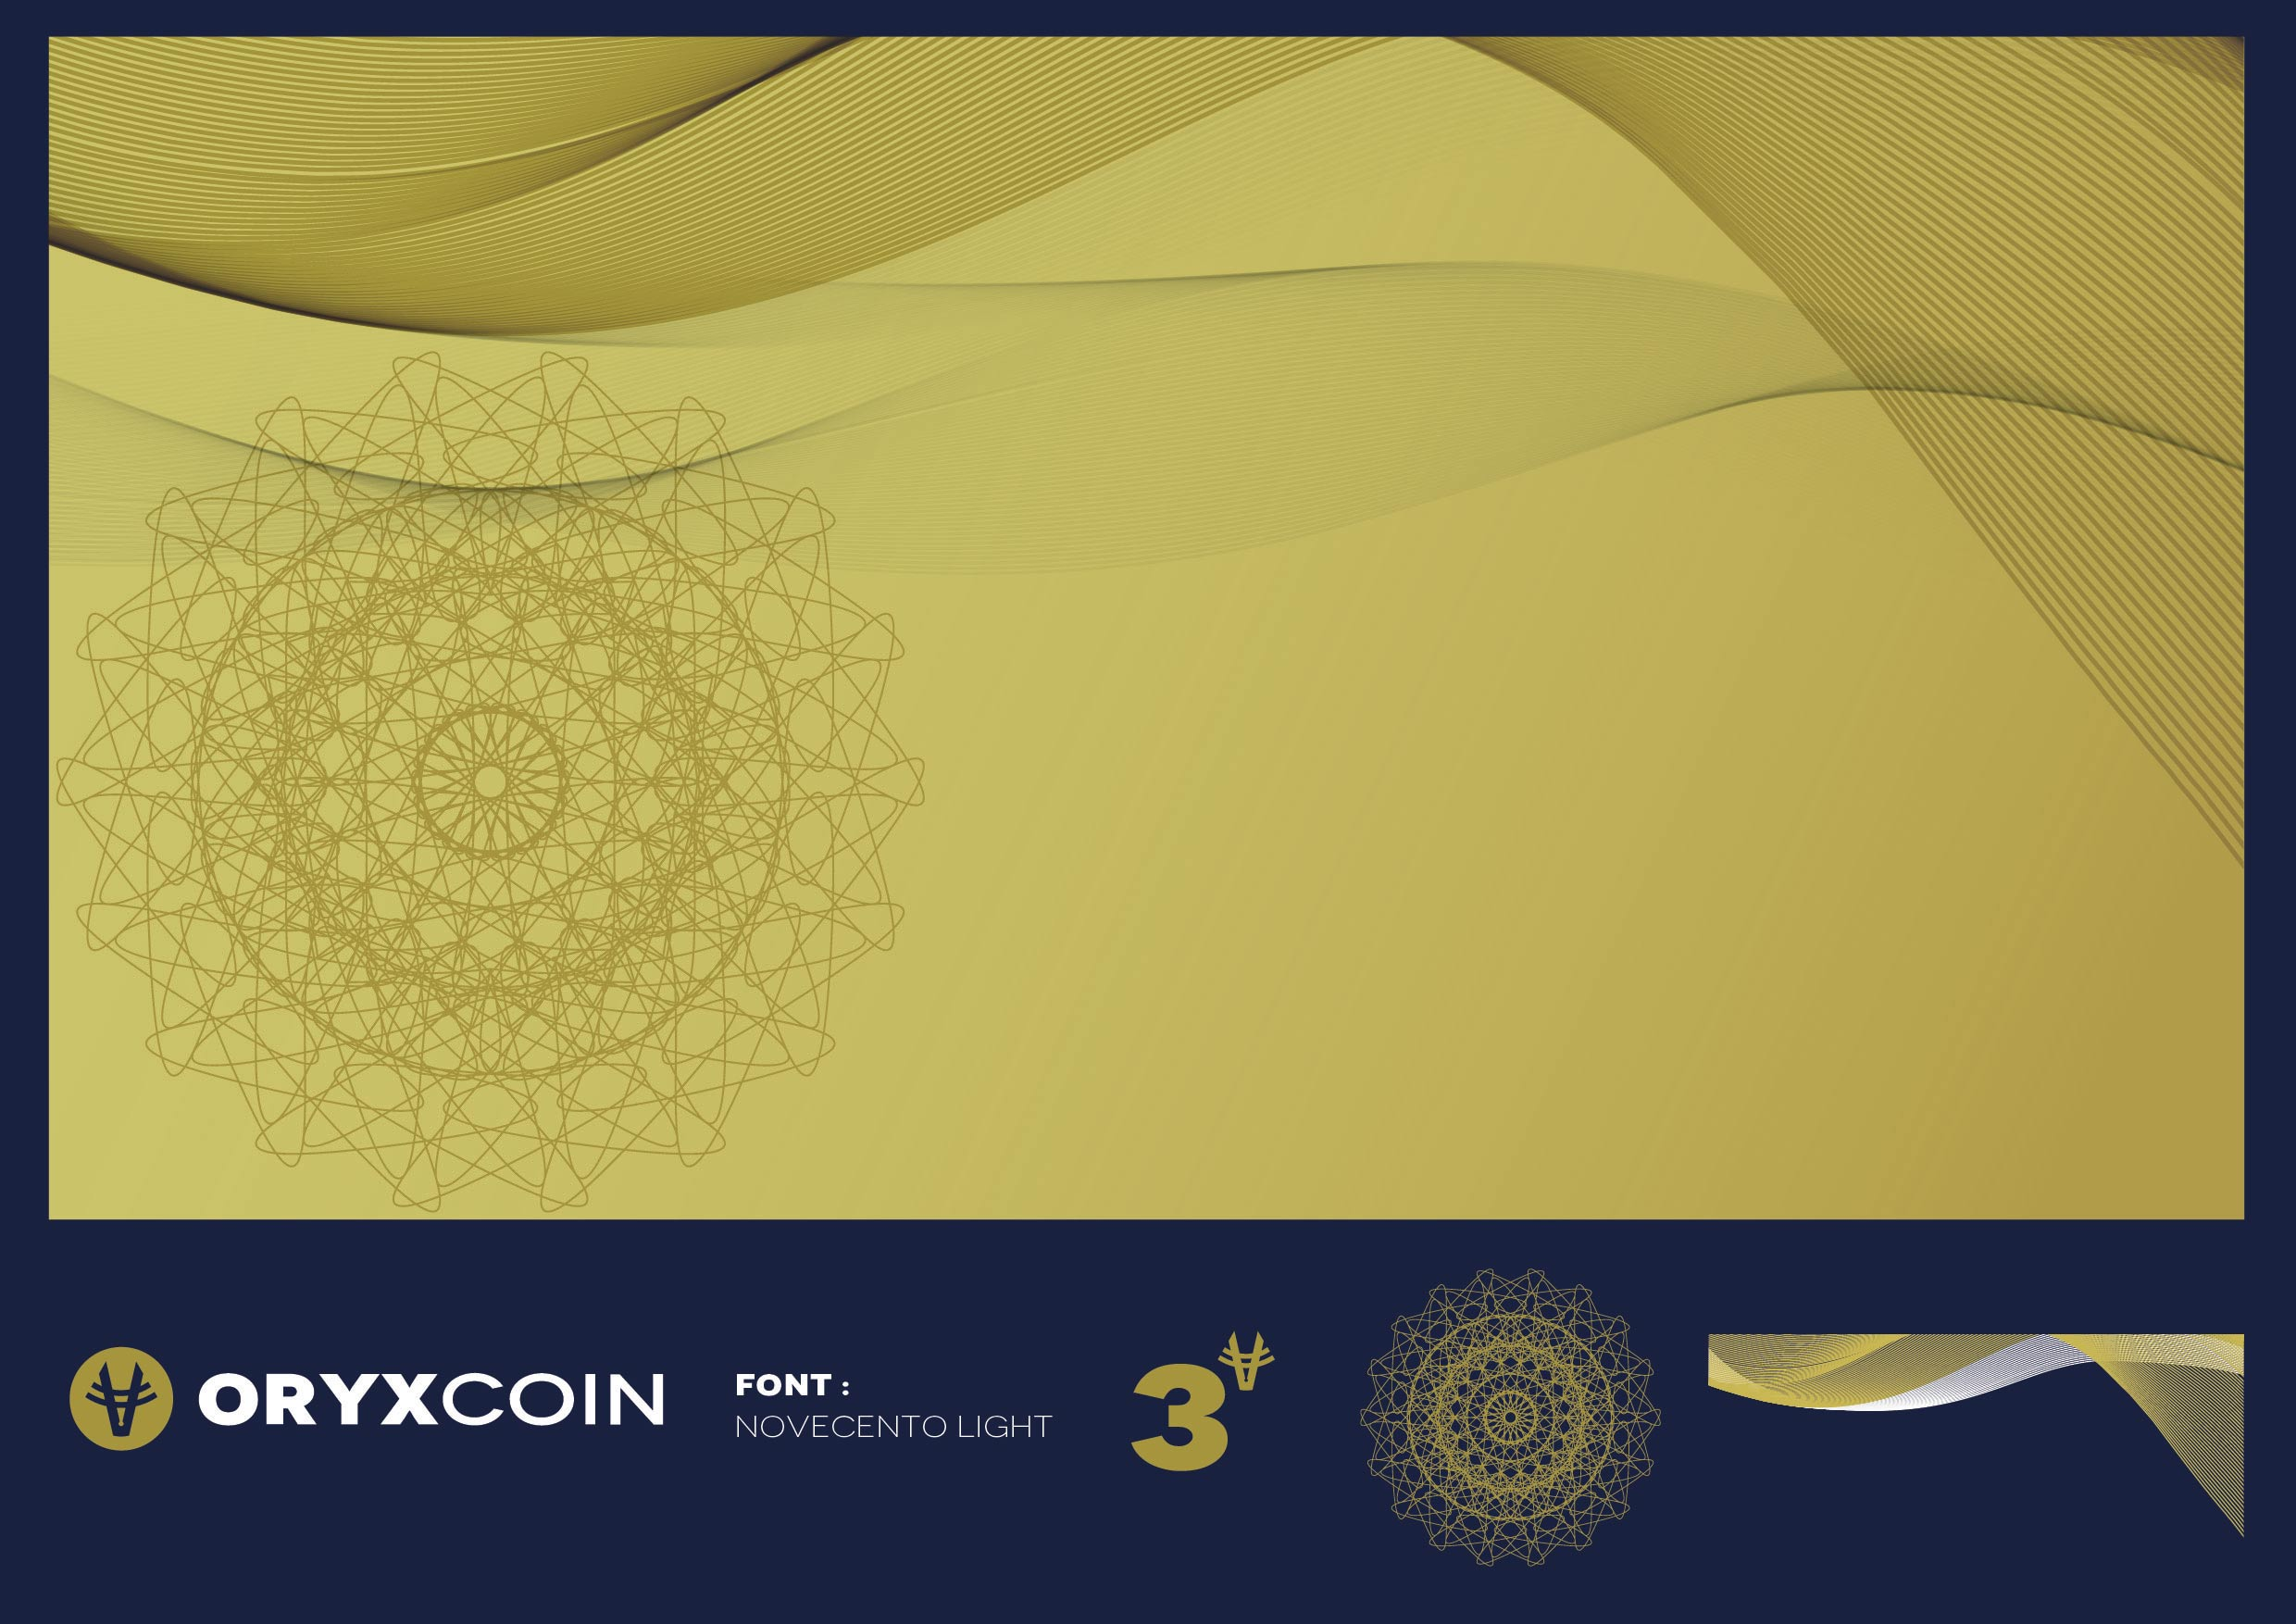 ORYXcoin-Brand-Guideline-Printing-27